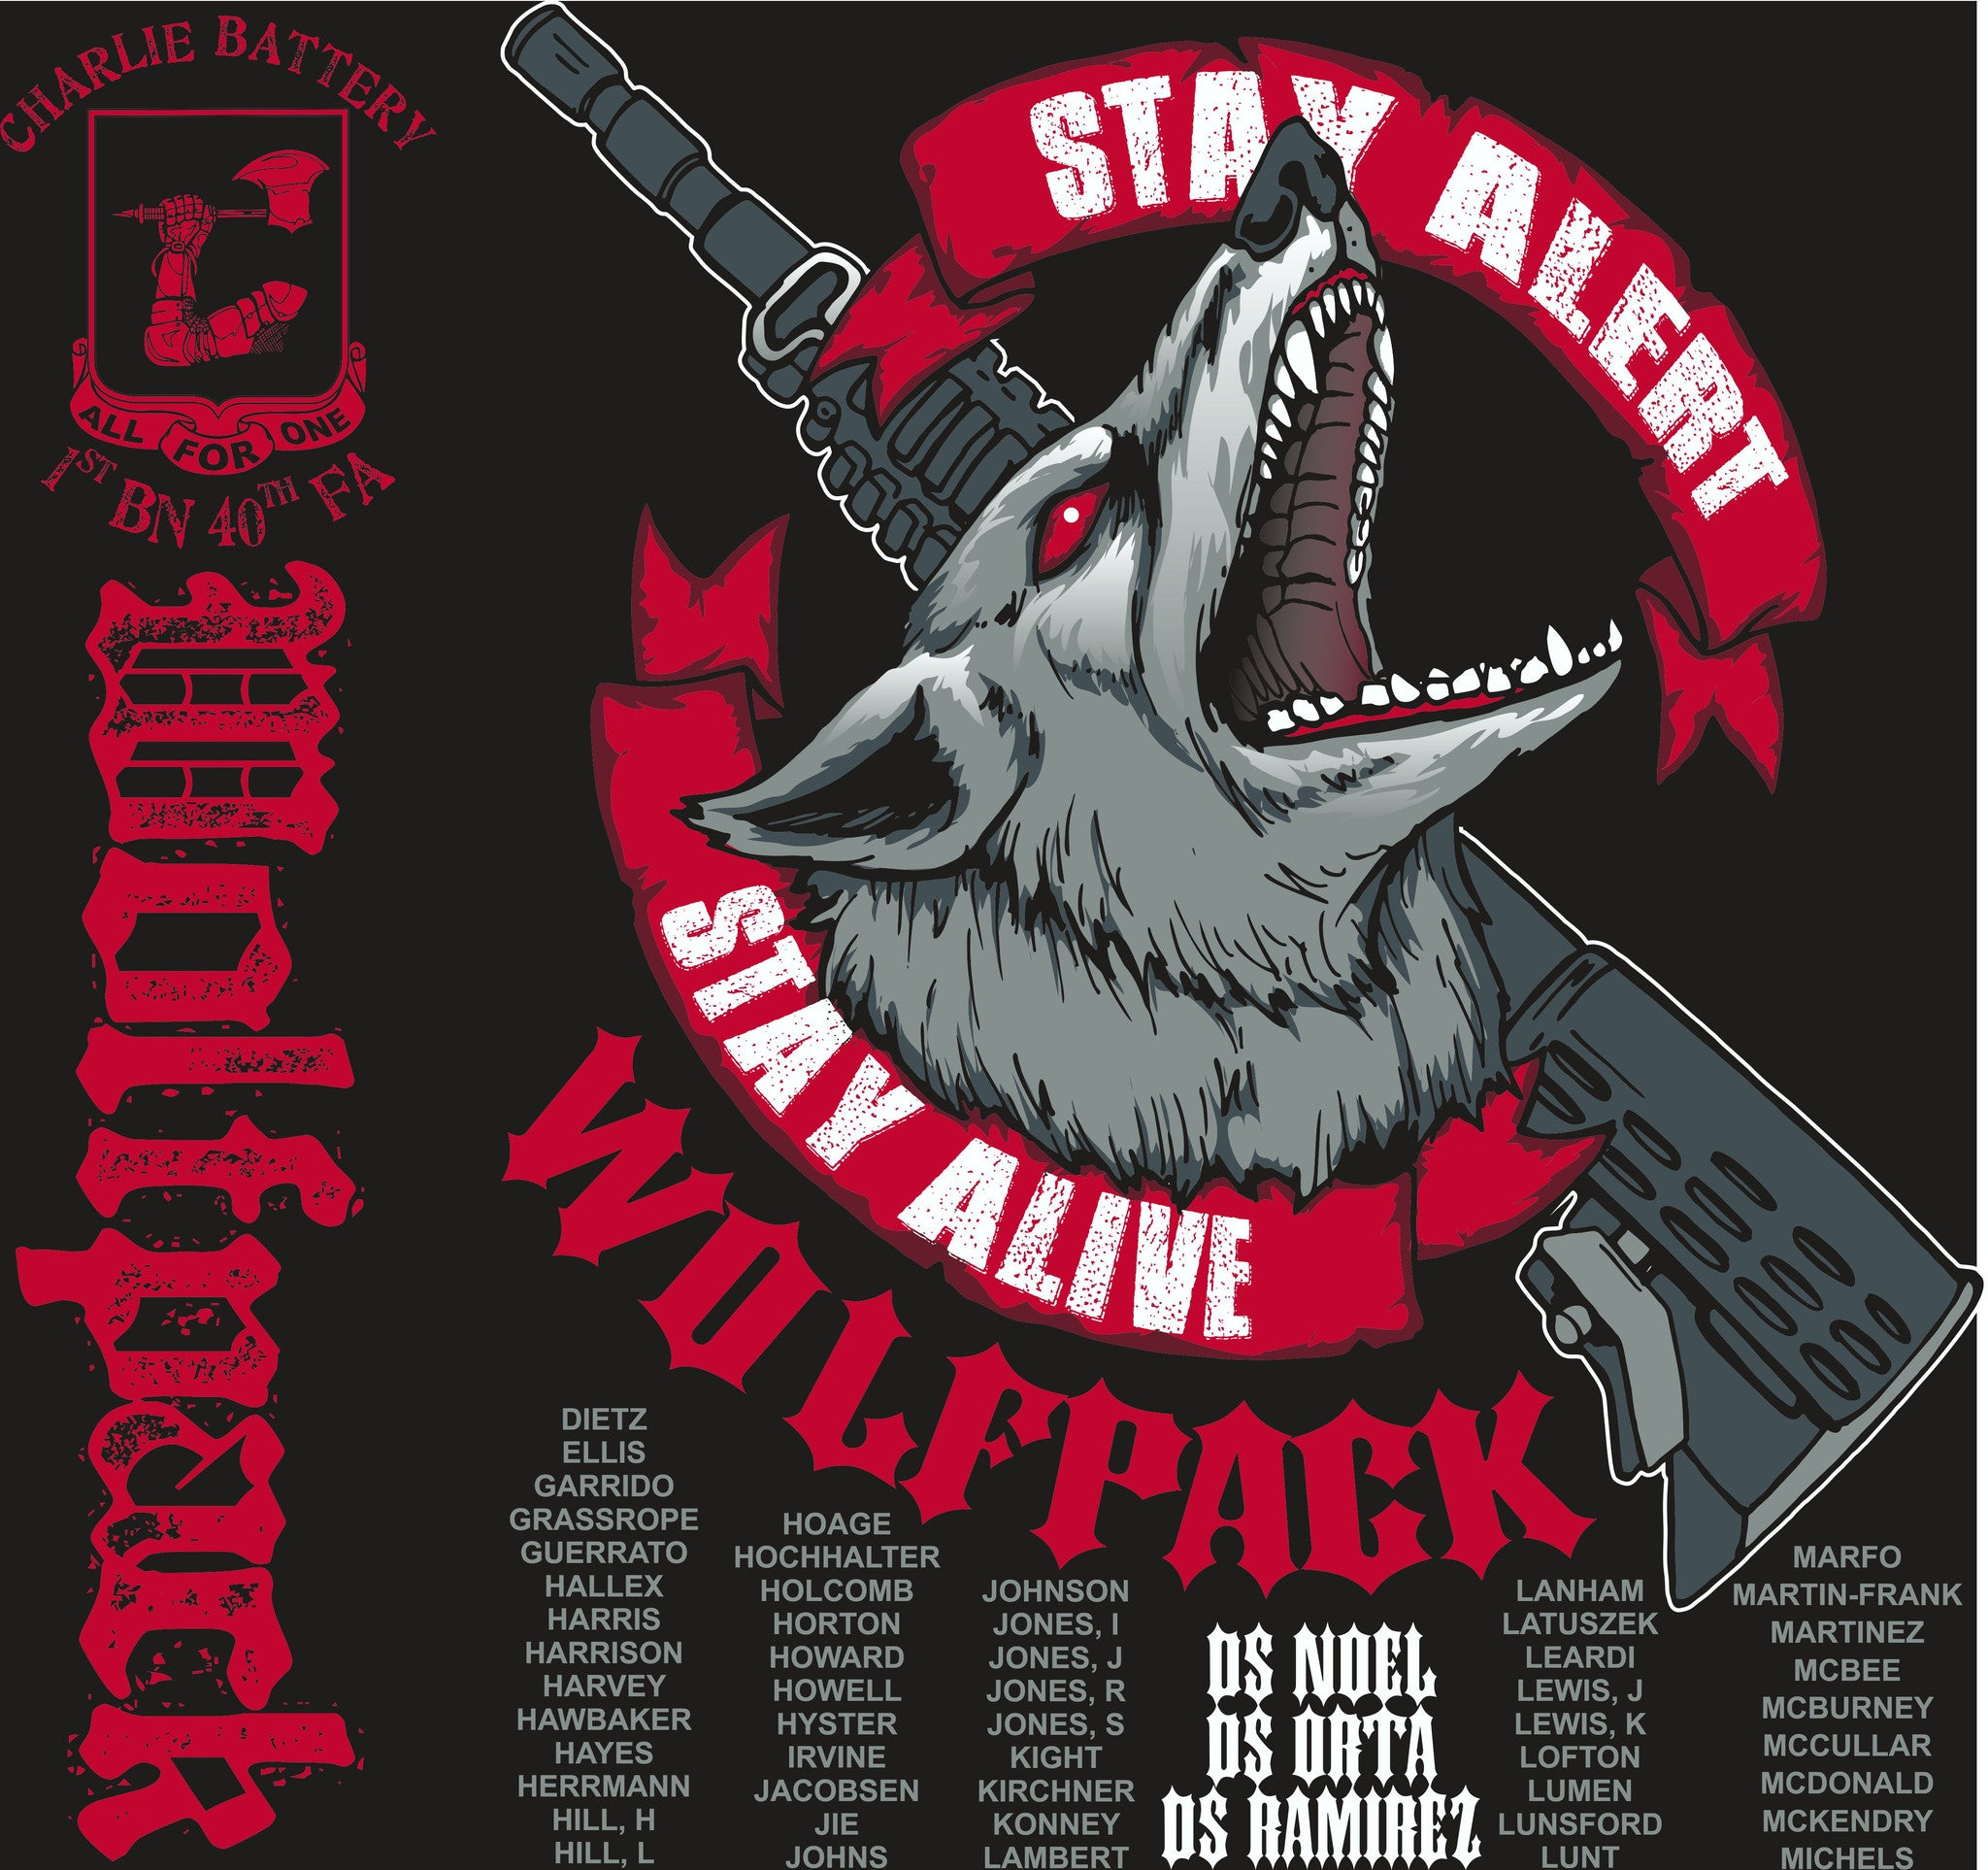 PLATOON SHIRTS (2nd generation print) CHARLIE 1st 40th WOLFPACK AUG 2016